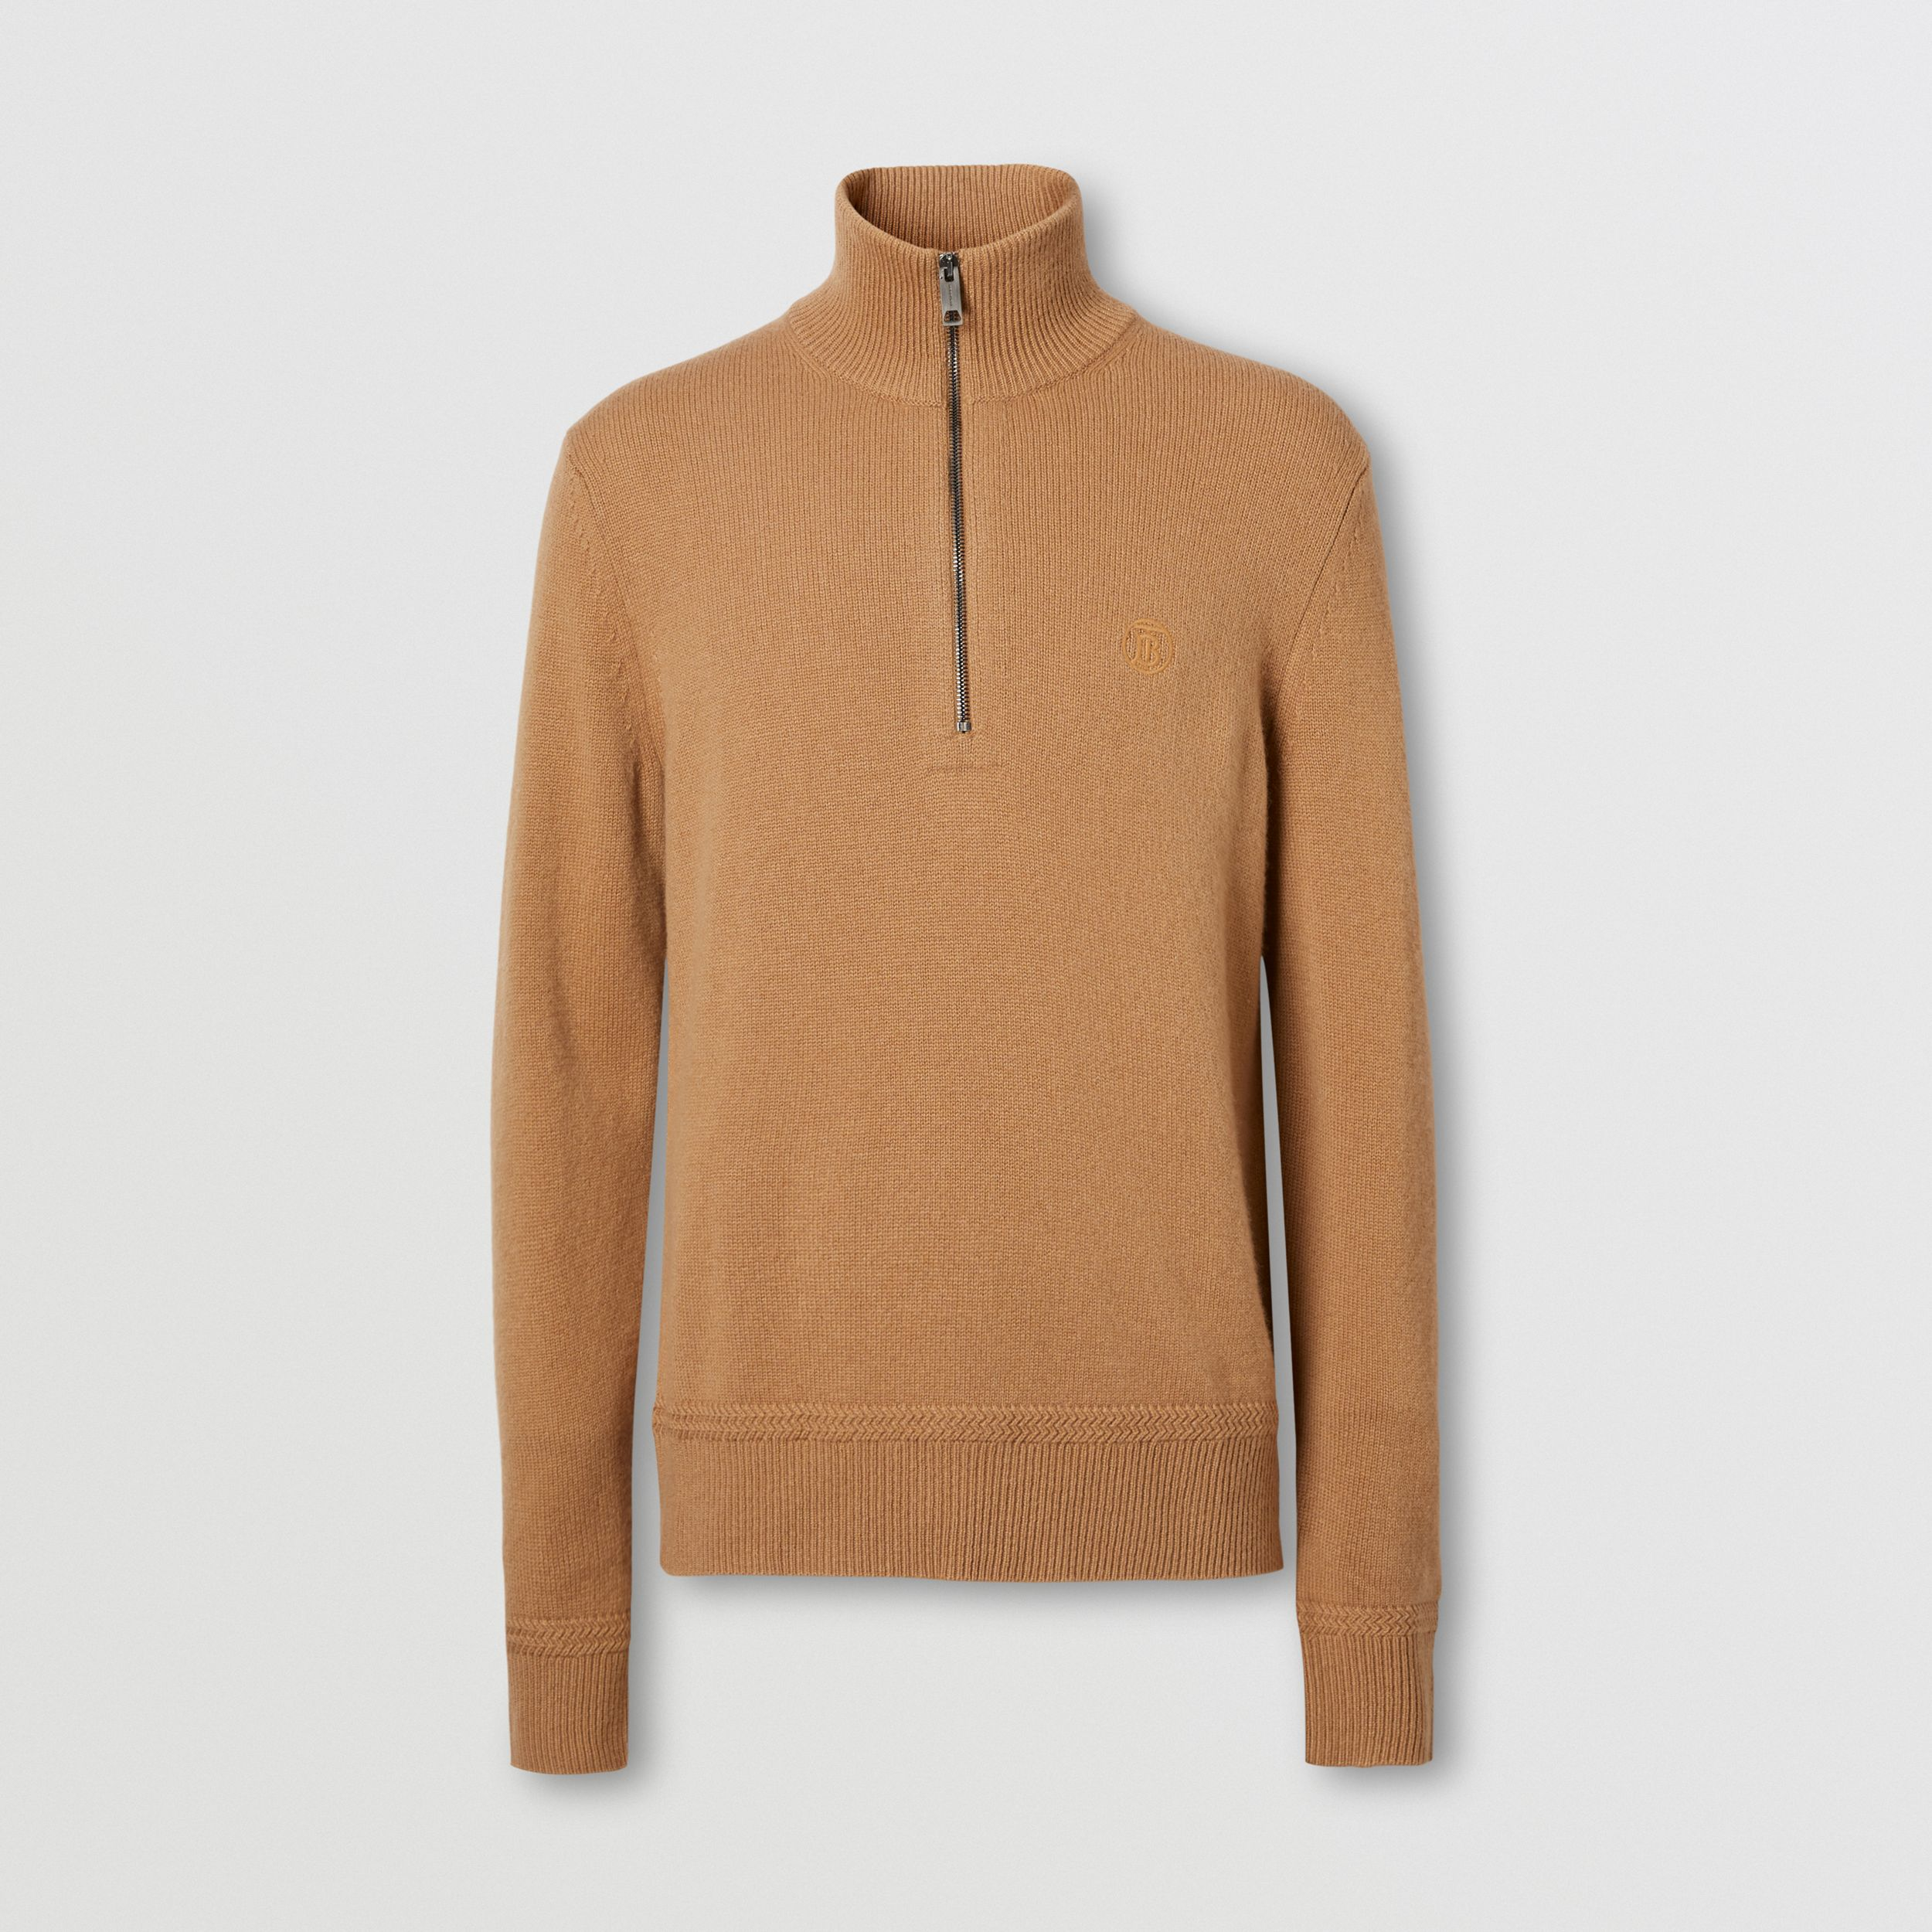 Monogram Motif Cashmere Funnel Neck Sweater in Camel - Men | Burberry - 4